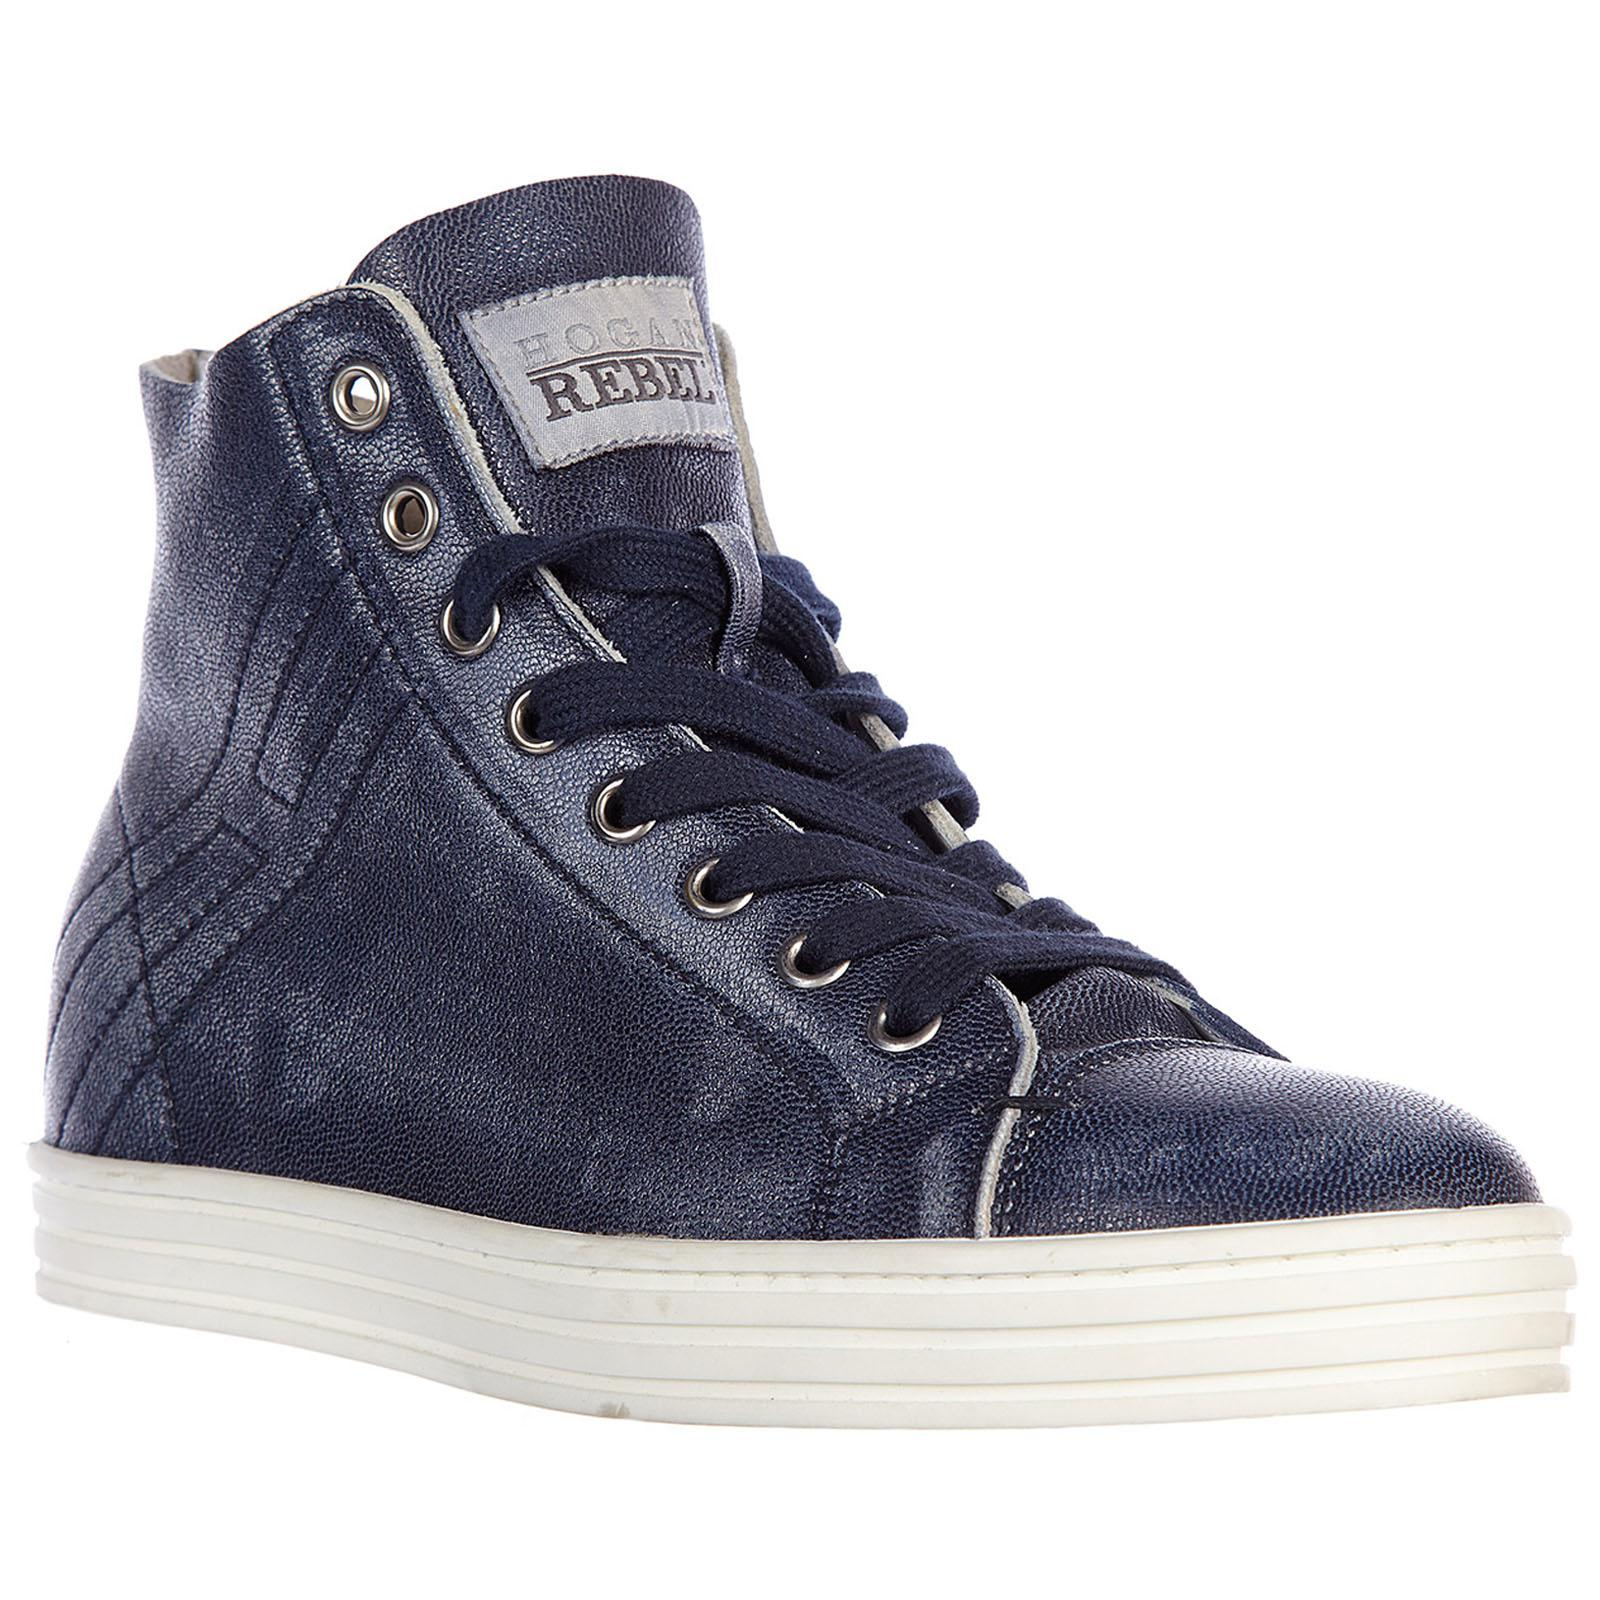 Lyst - Hogan Rebel Shoes High Top Leather Trainers Sneakers R182 ... cae713a9c49